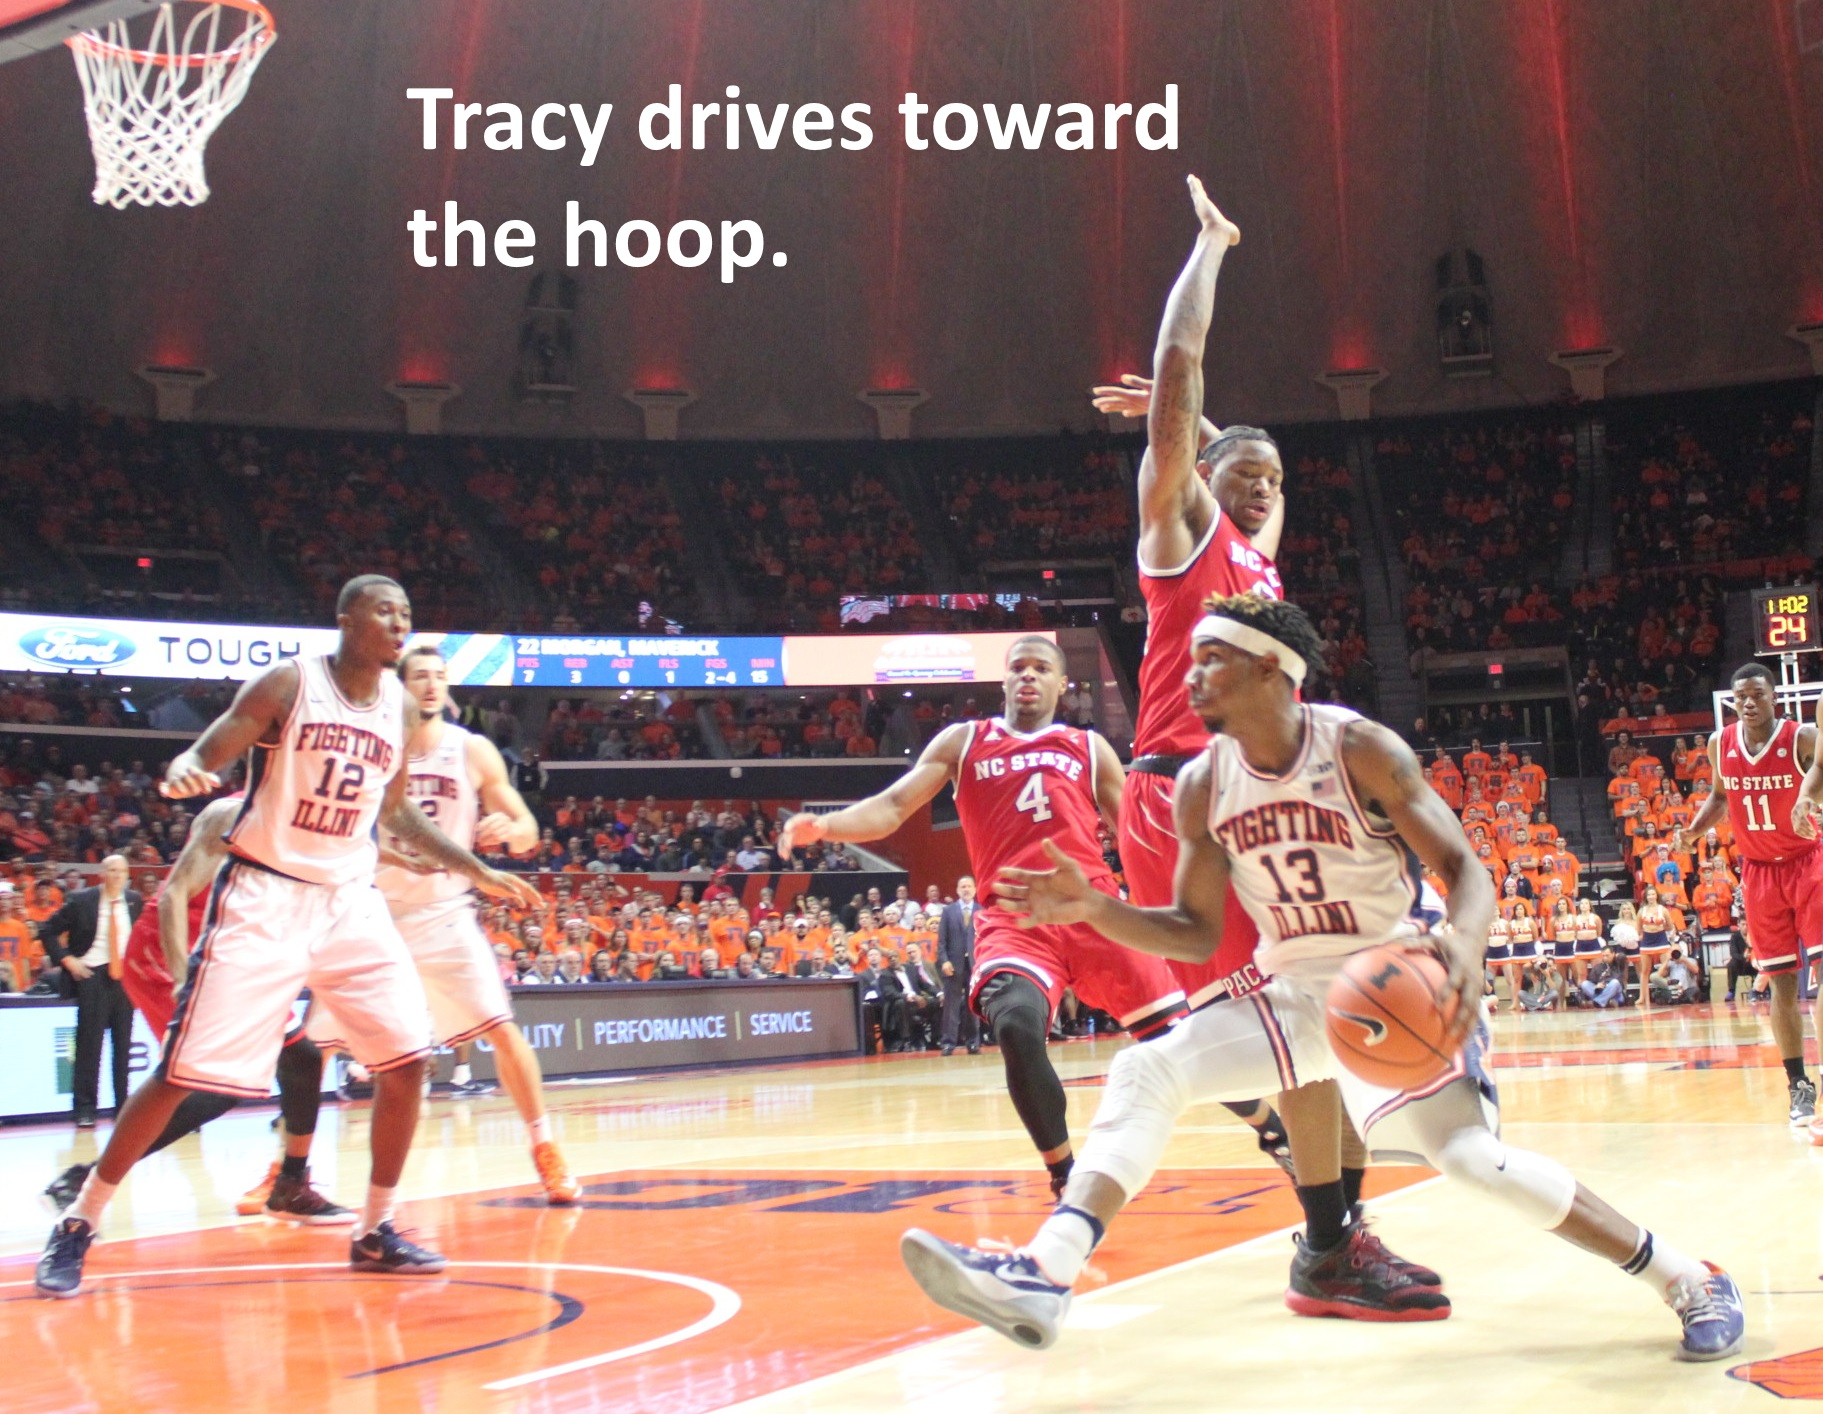 tracy-abrams-drives-toward-the-hoop